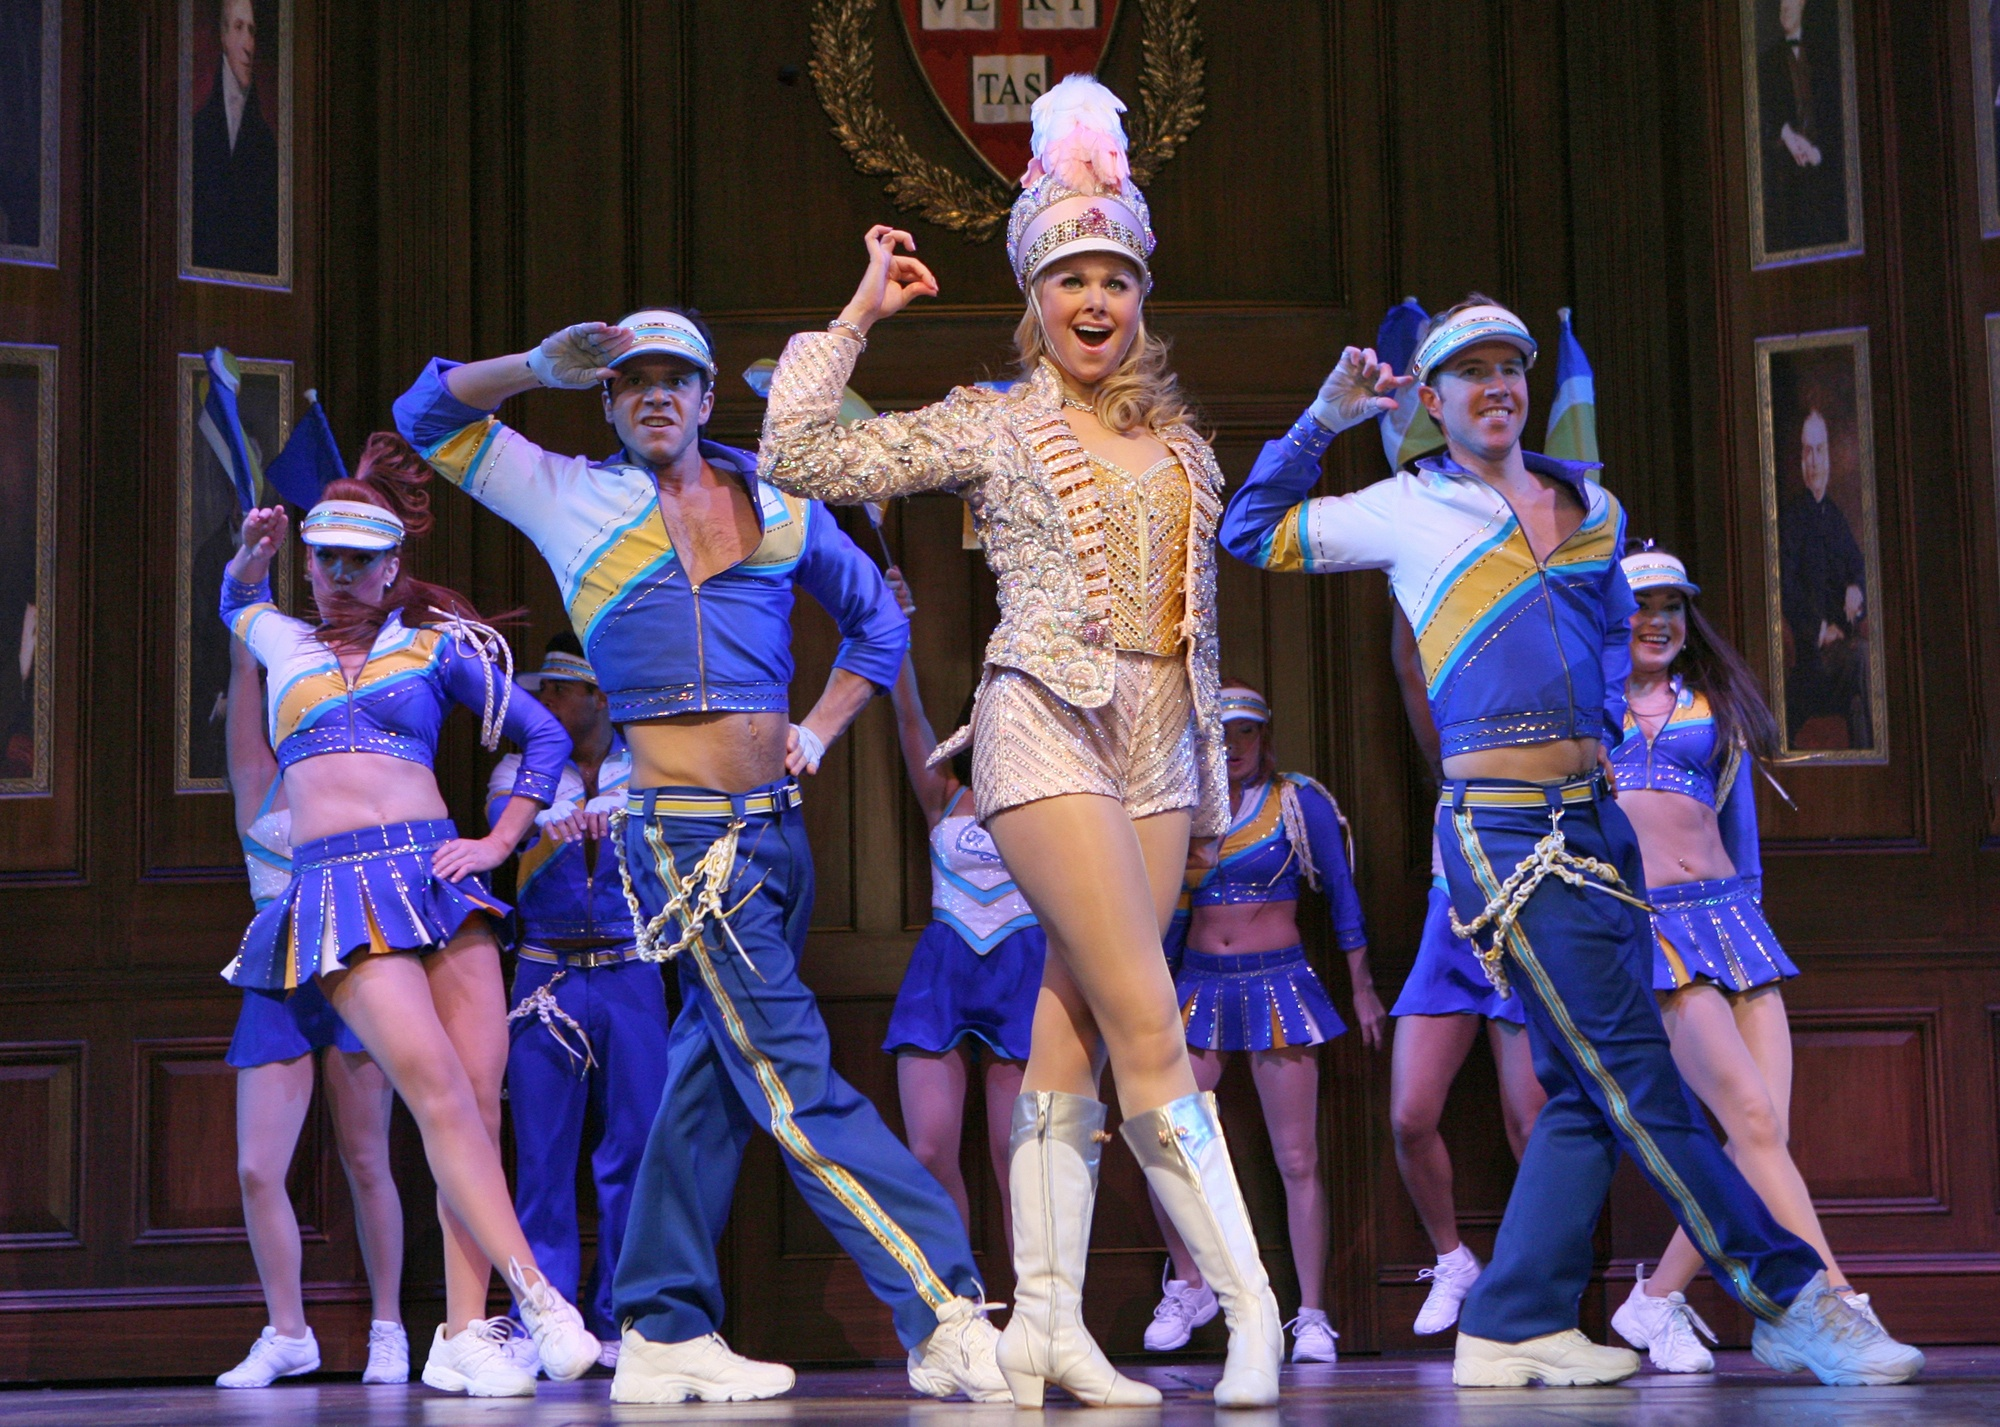 """This photo provided by Barlow-Hartman shows Laura Bell Bundy and company in """"Legally Blonde,"""" now playing at Broadway's Palace Theater. (AP Photo/Barlow-Hartman/Joan Marcus)"""